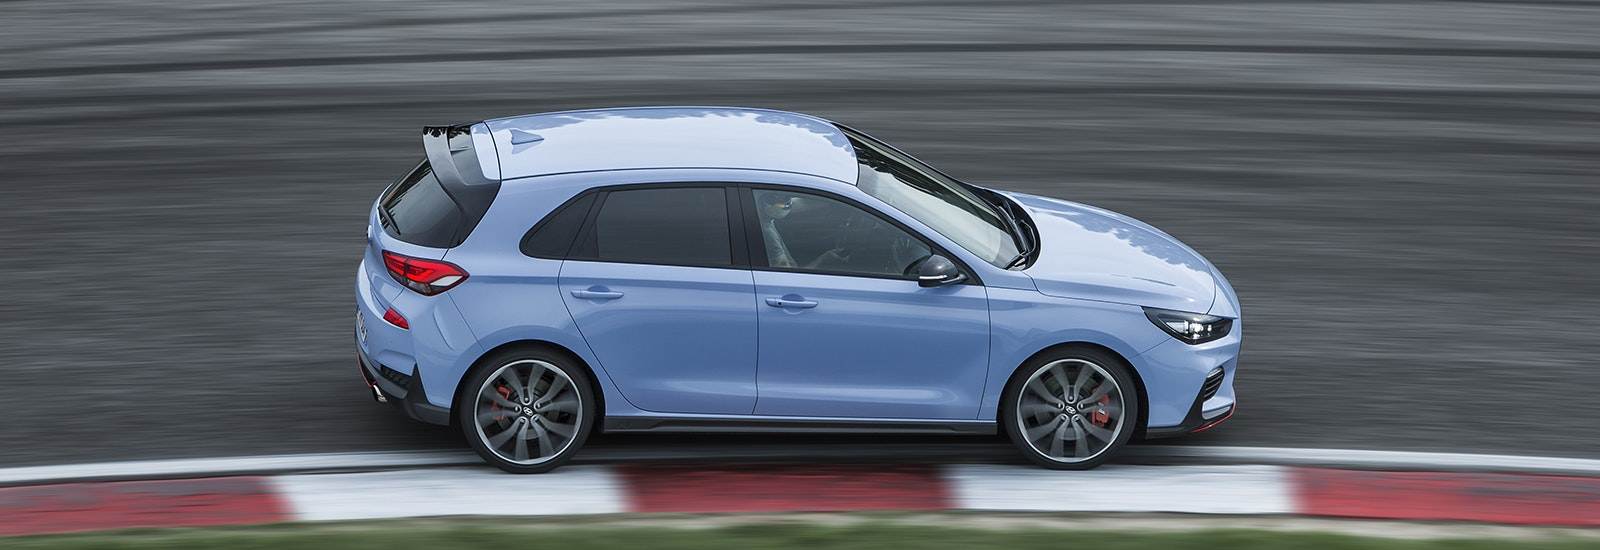 Hyundai I30 N Hot Hatch Price Specs Release Date Carwow